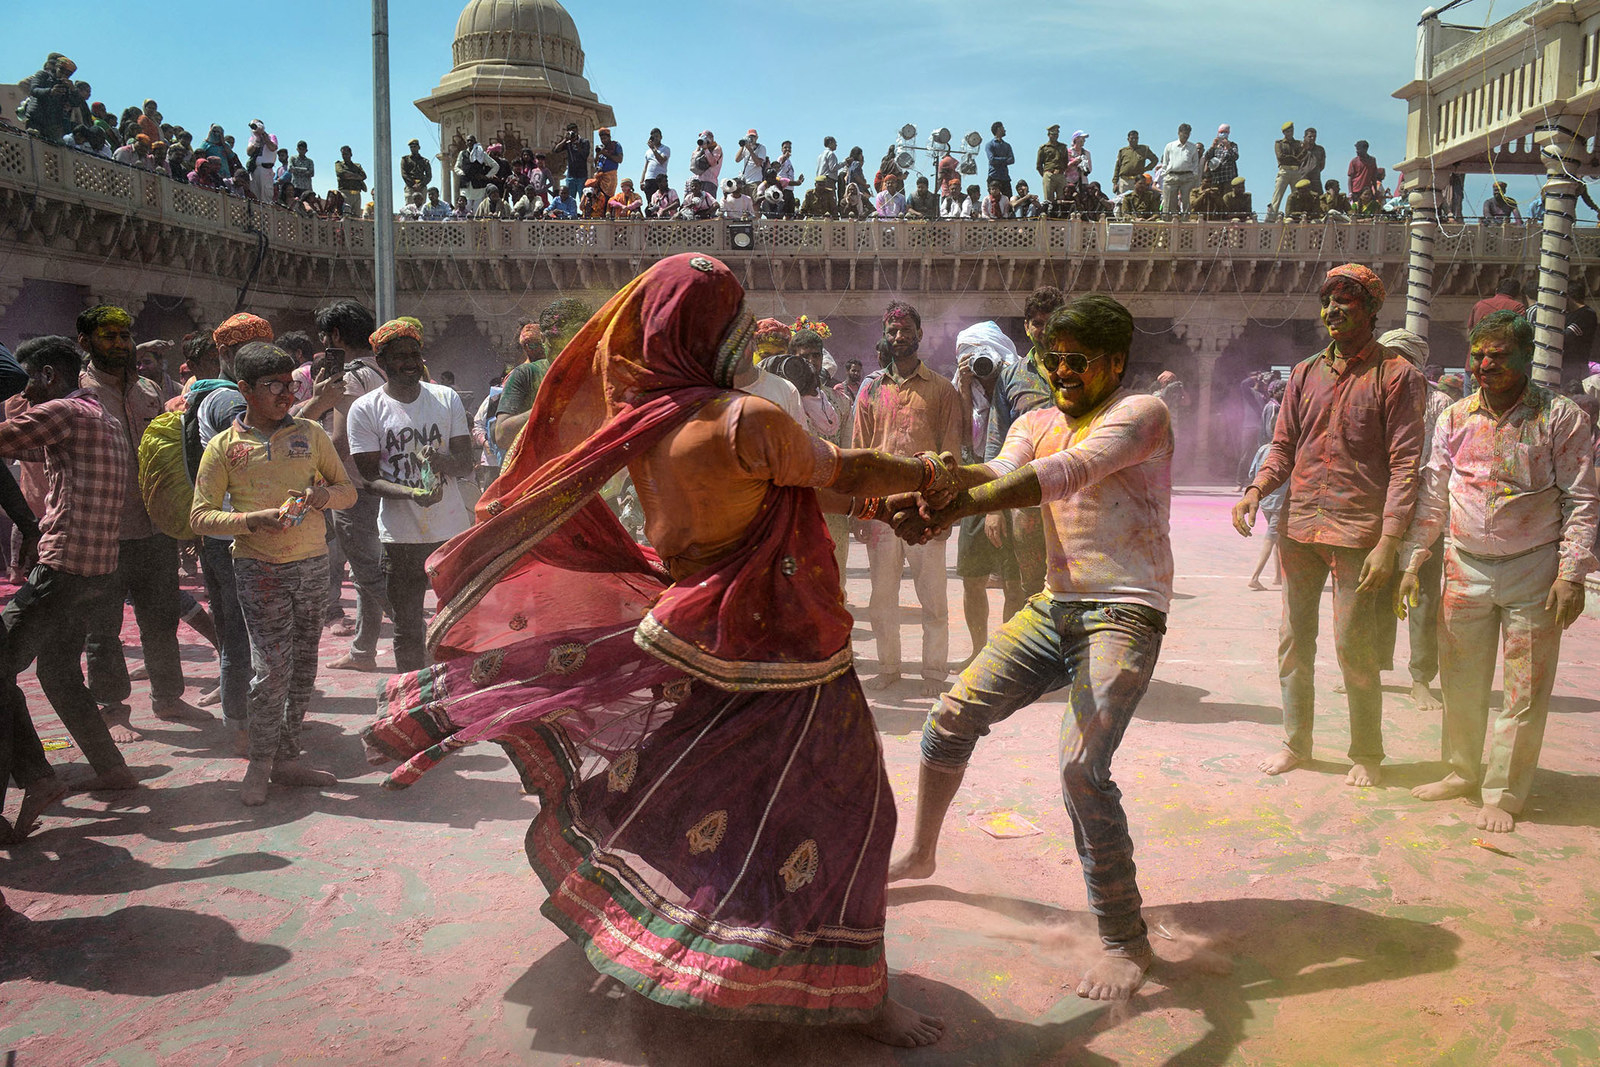 Indian Hindu devotees covered in colored powder dance as they celebrate Holi at a temple in Nandgaon, India, on March 16.